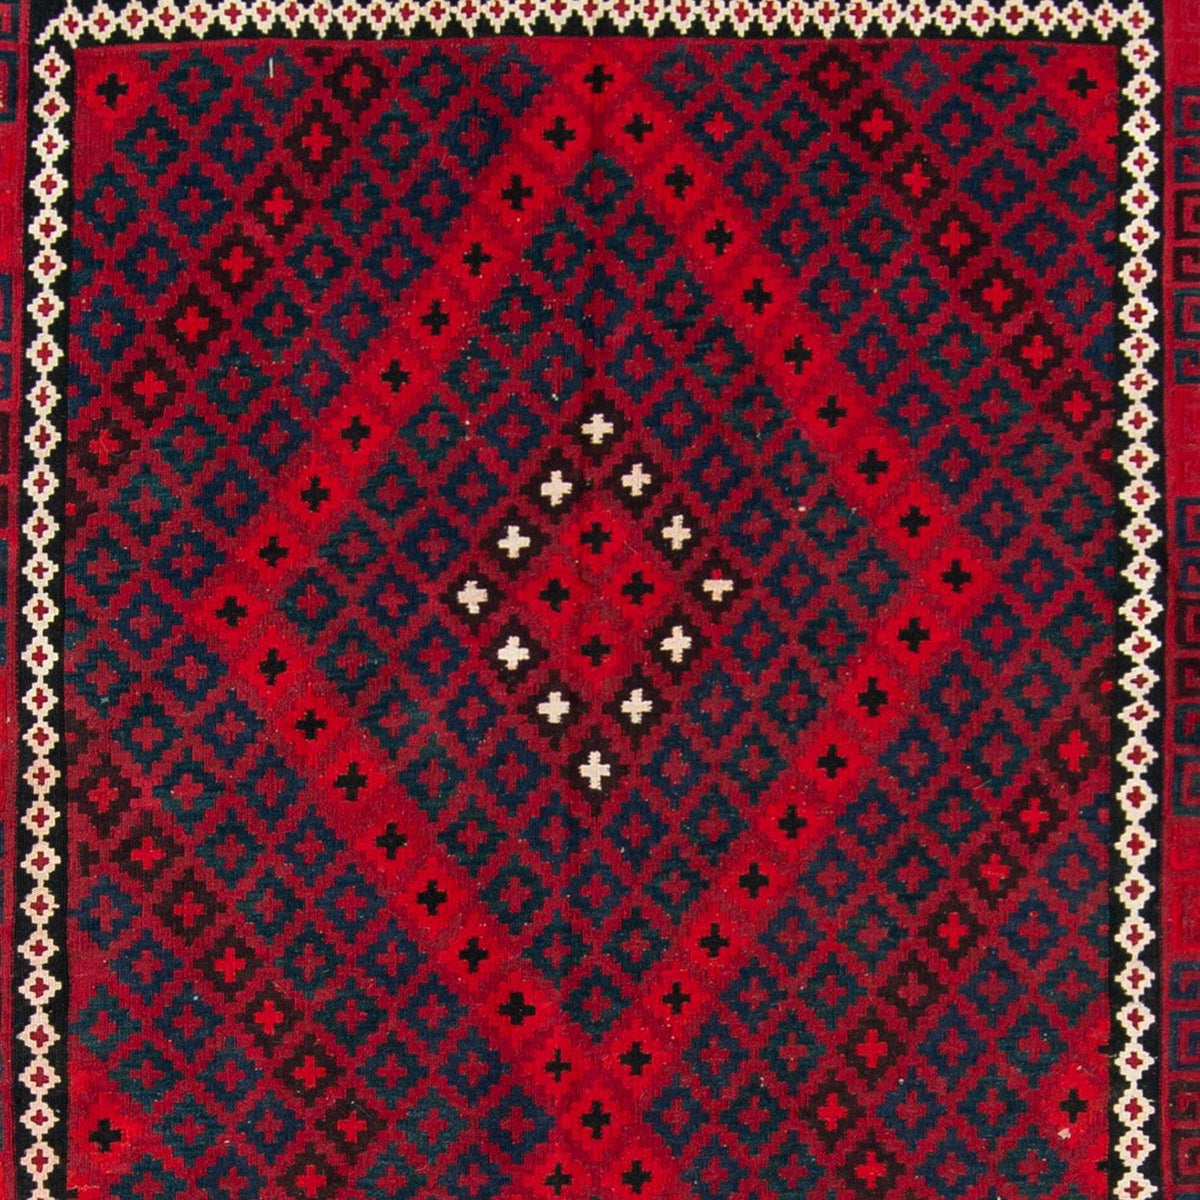 Fine Hand-woven 100% Wool Kilim Rug 260cm x 357cm Persian-Rug | House-of-Haghi | NewMarket | Auckland | NZ | Handmade Persian Rugs | Hand Knotted Persian Rugs